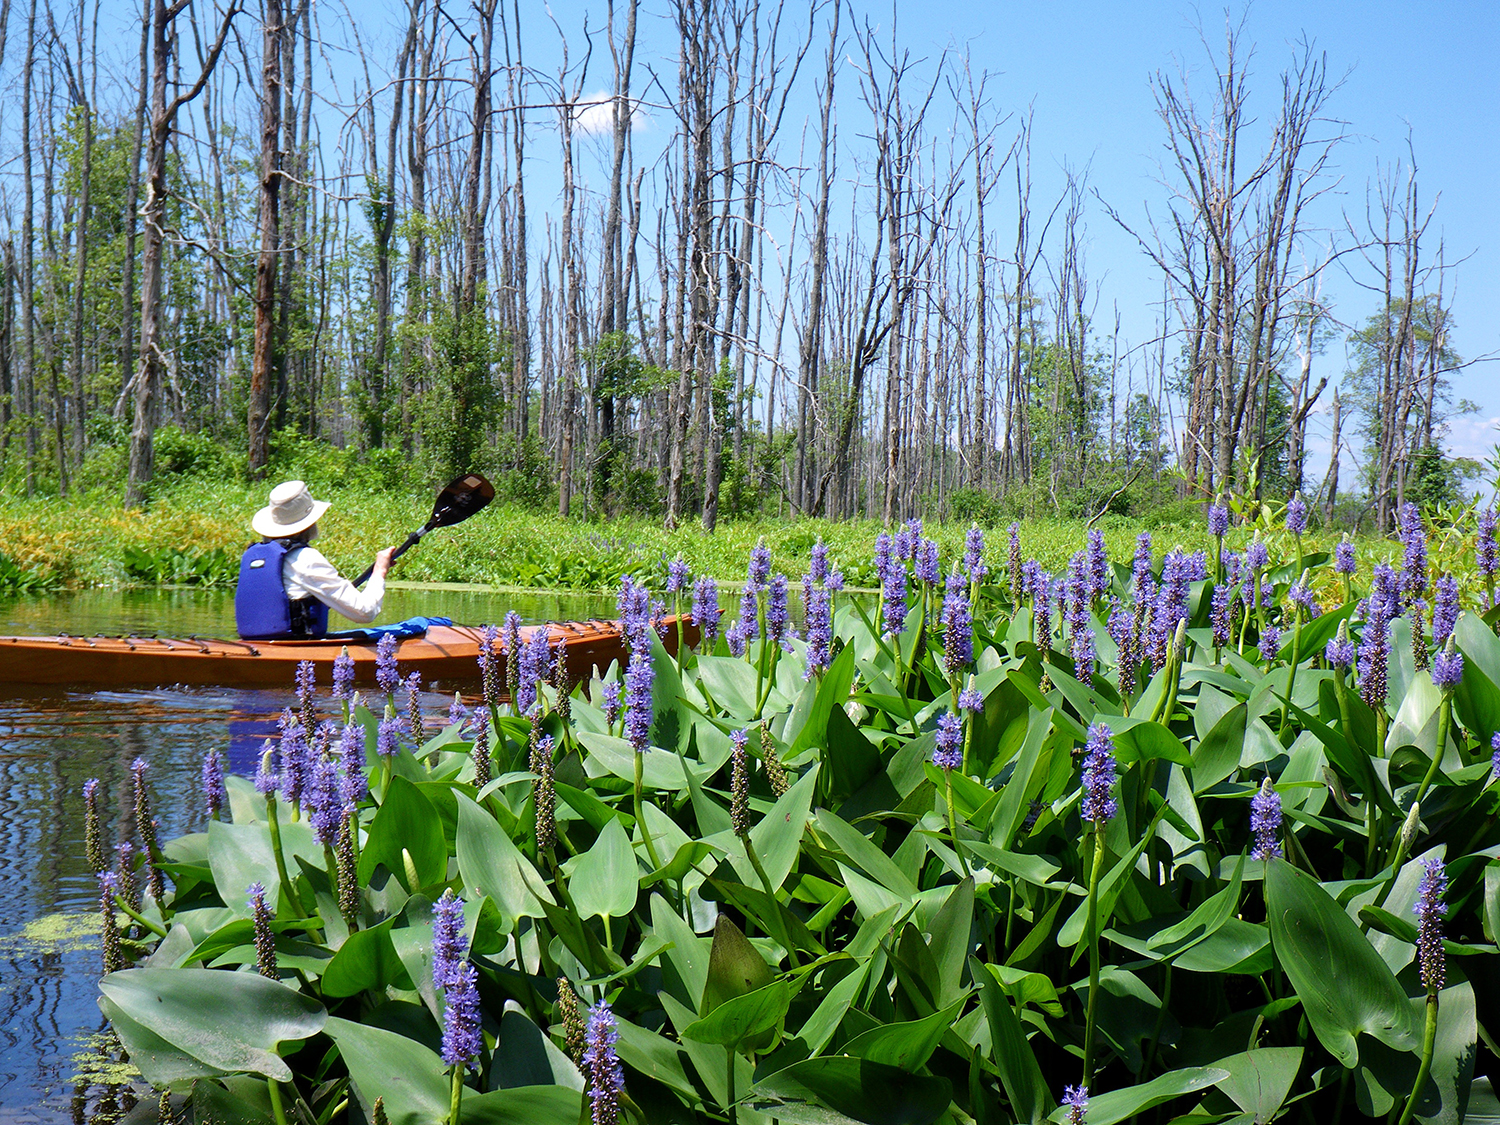 Pickerel weed along the Anthony Kill with Char Mapes paddling.   Alan Mapes